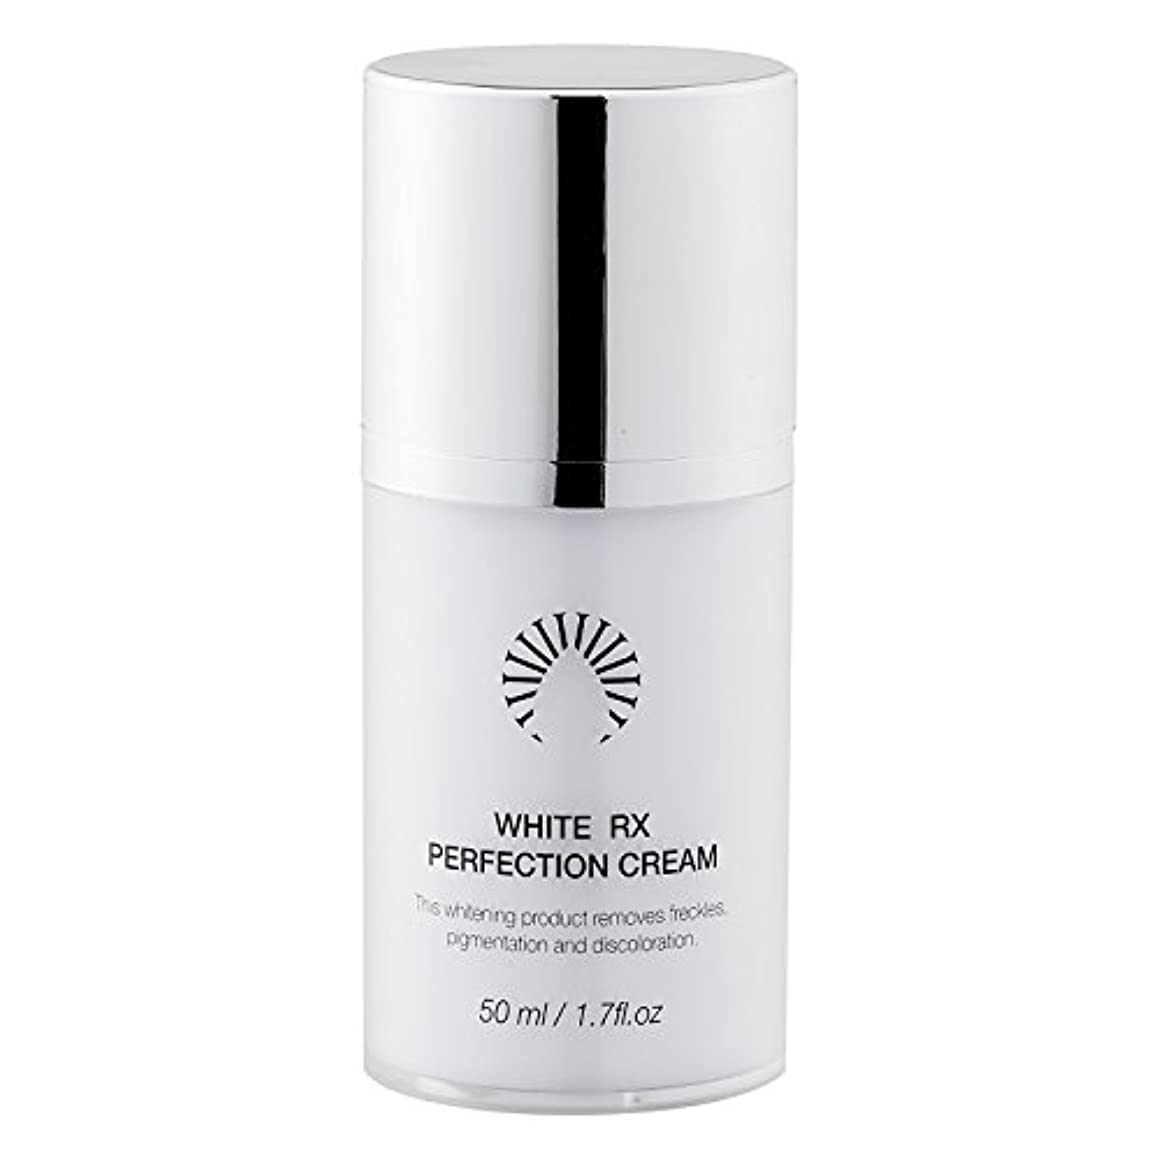 クラフト前文セッティングLEAUCLAIRE CALLUS White RX Perfection Cream